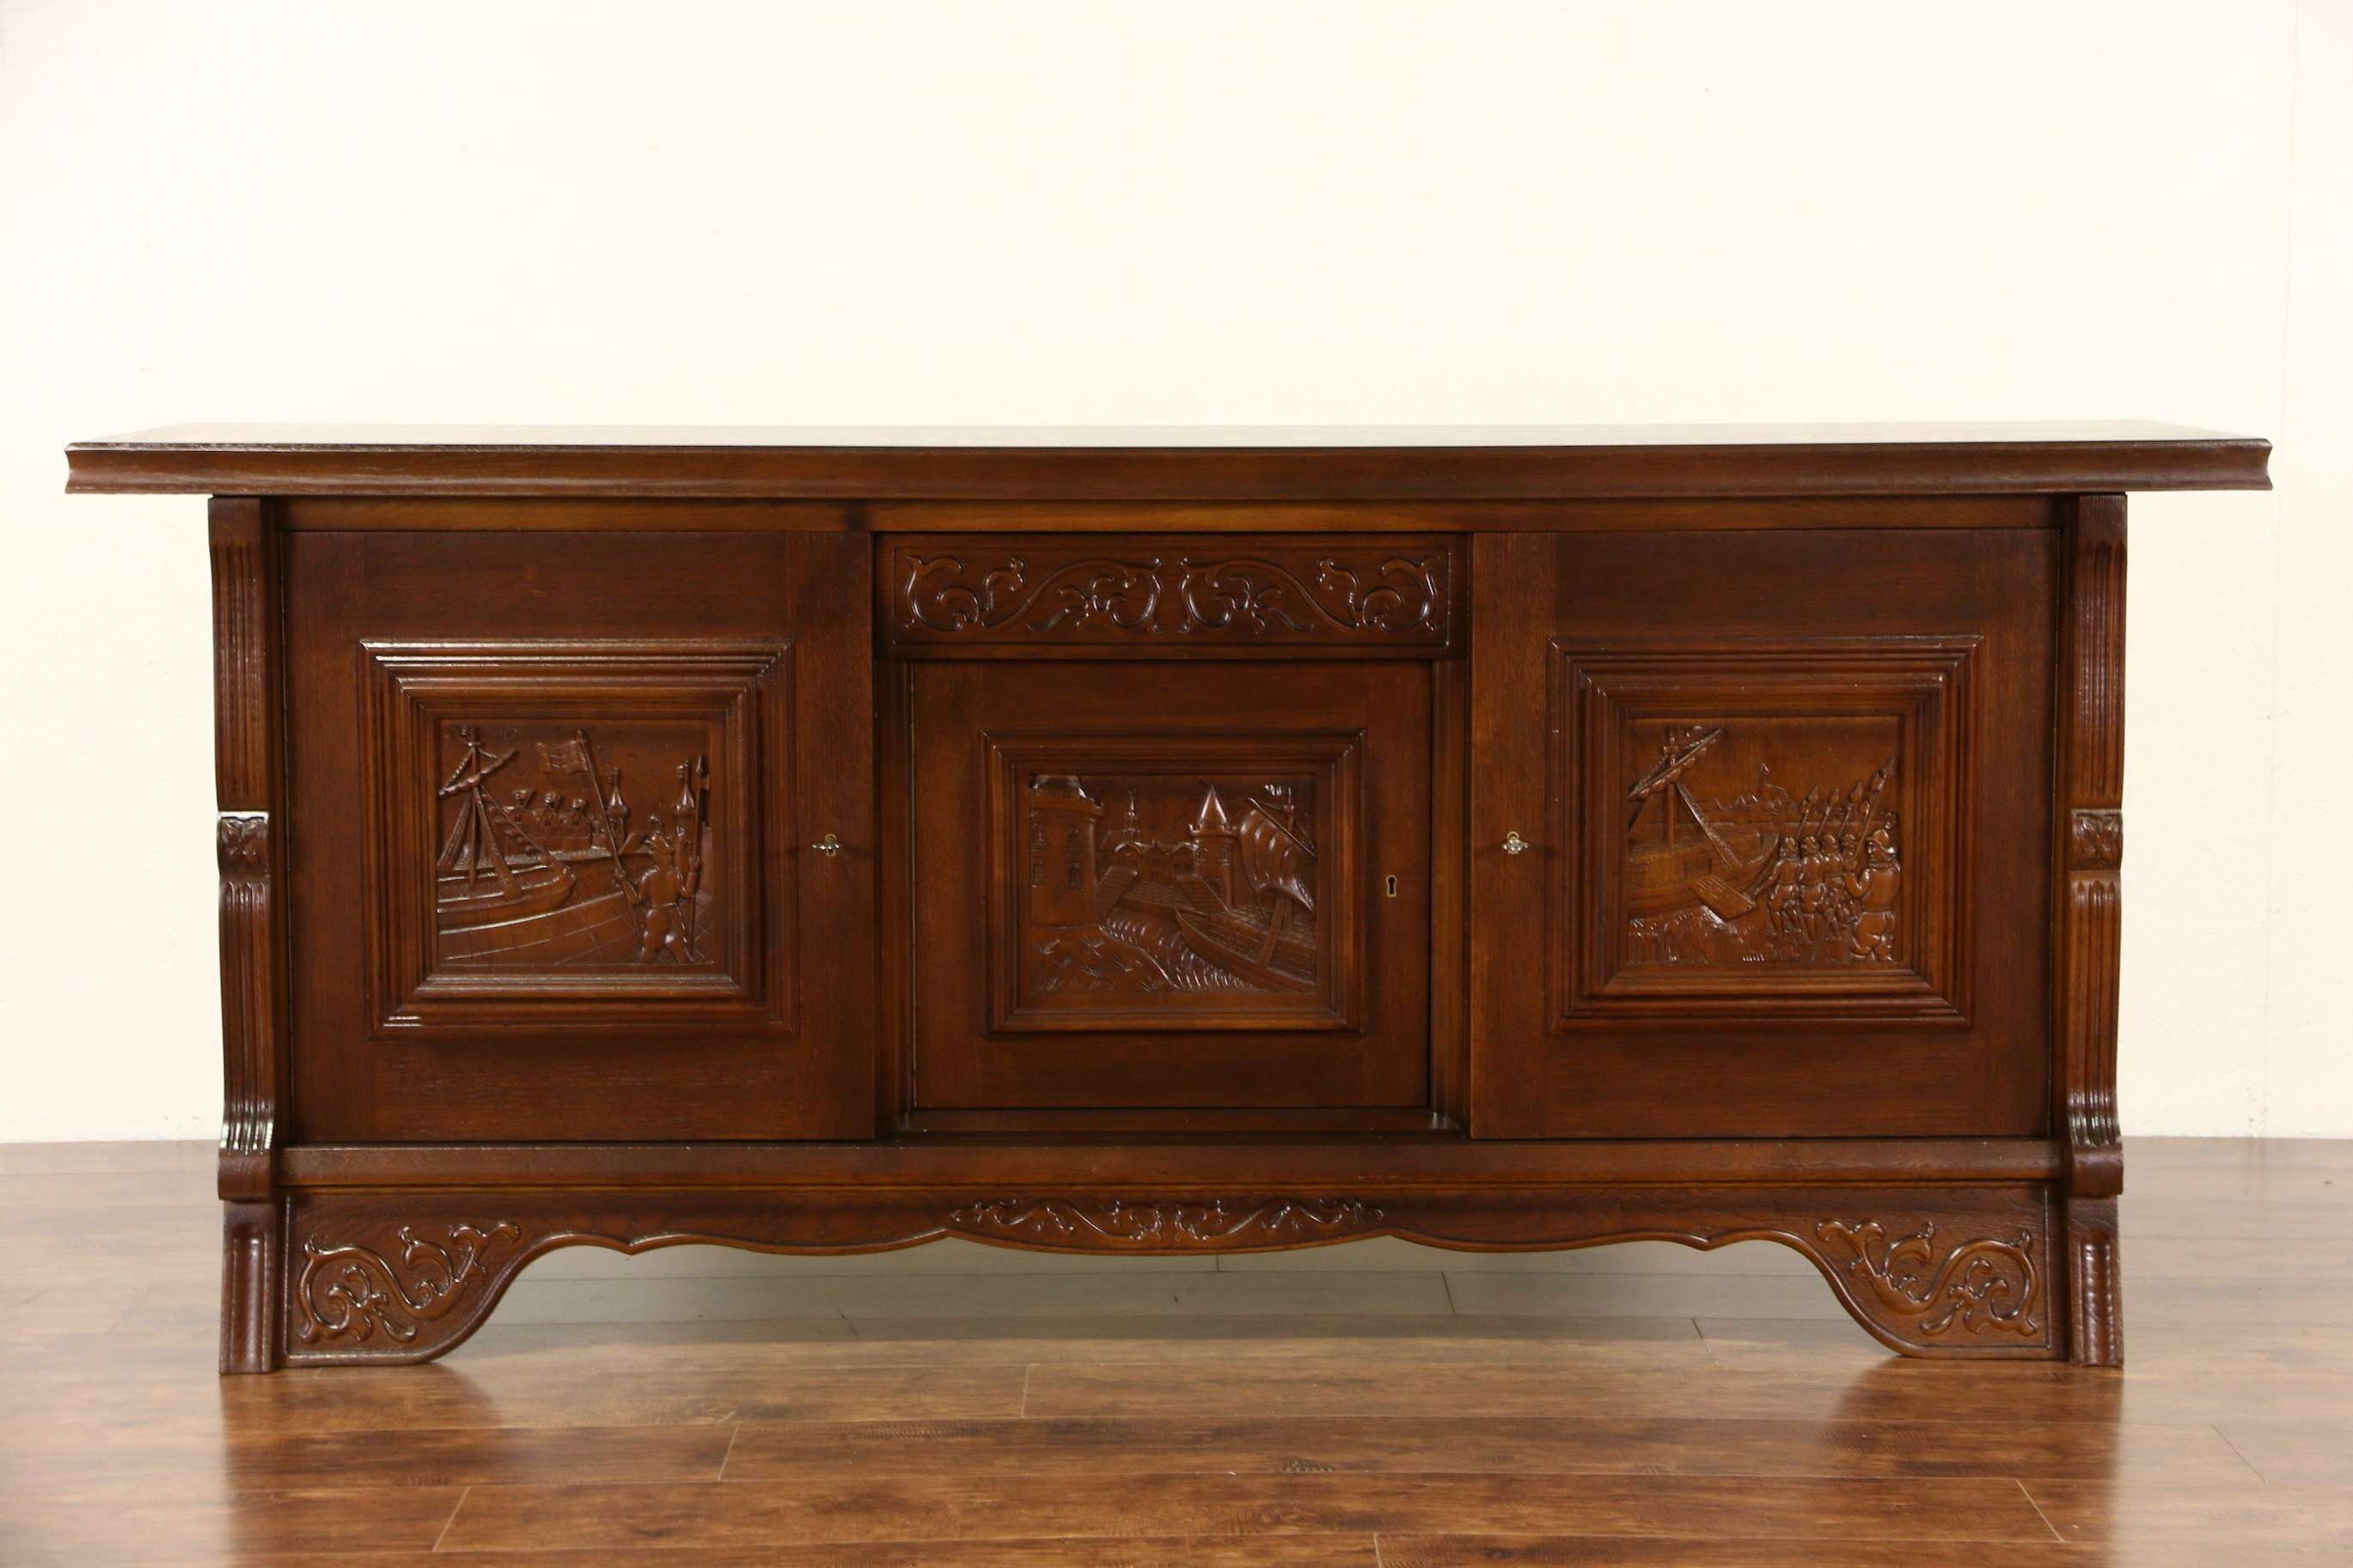 New Credenzas And Sideboards – Bjdgjy For Credenzas And Sideboards (View 11 of 20)